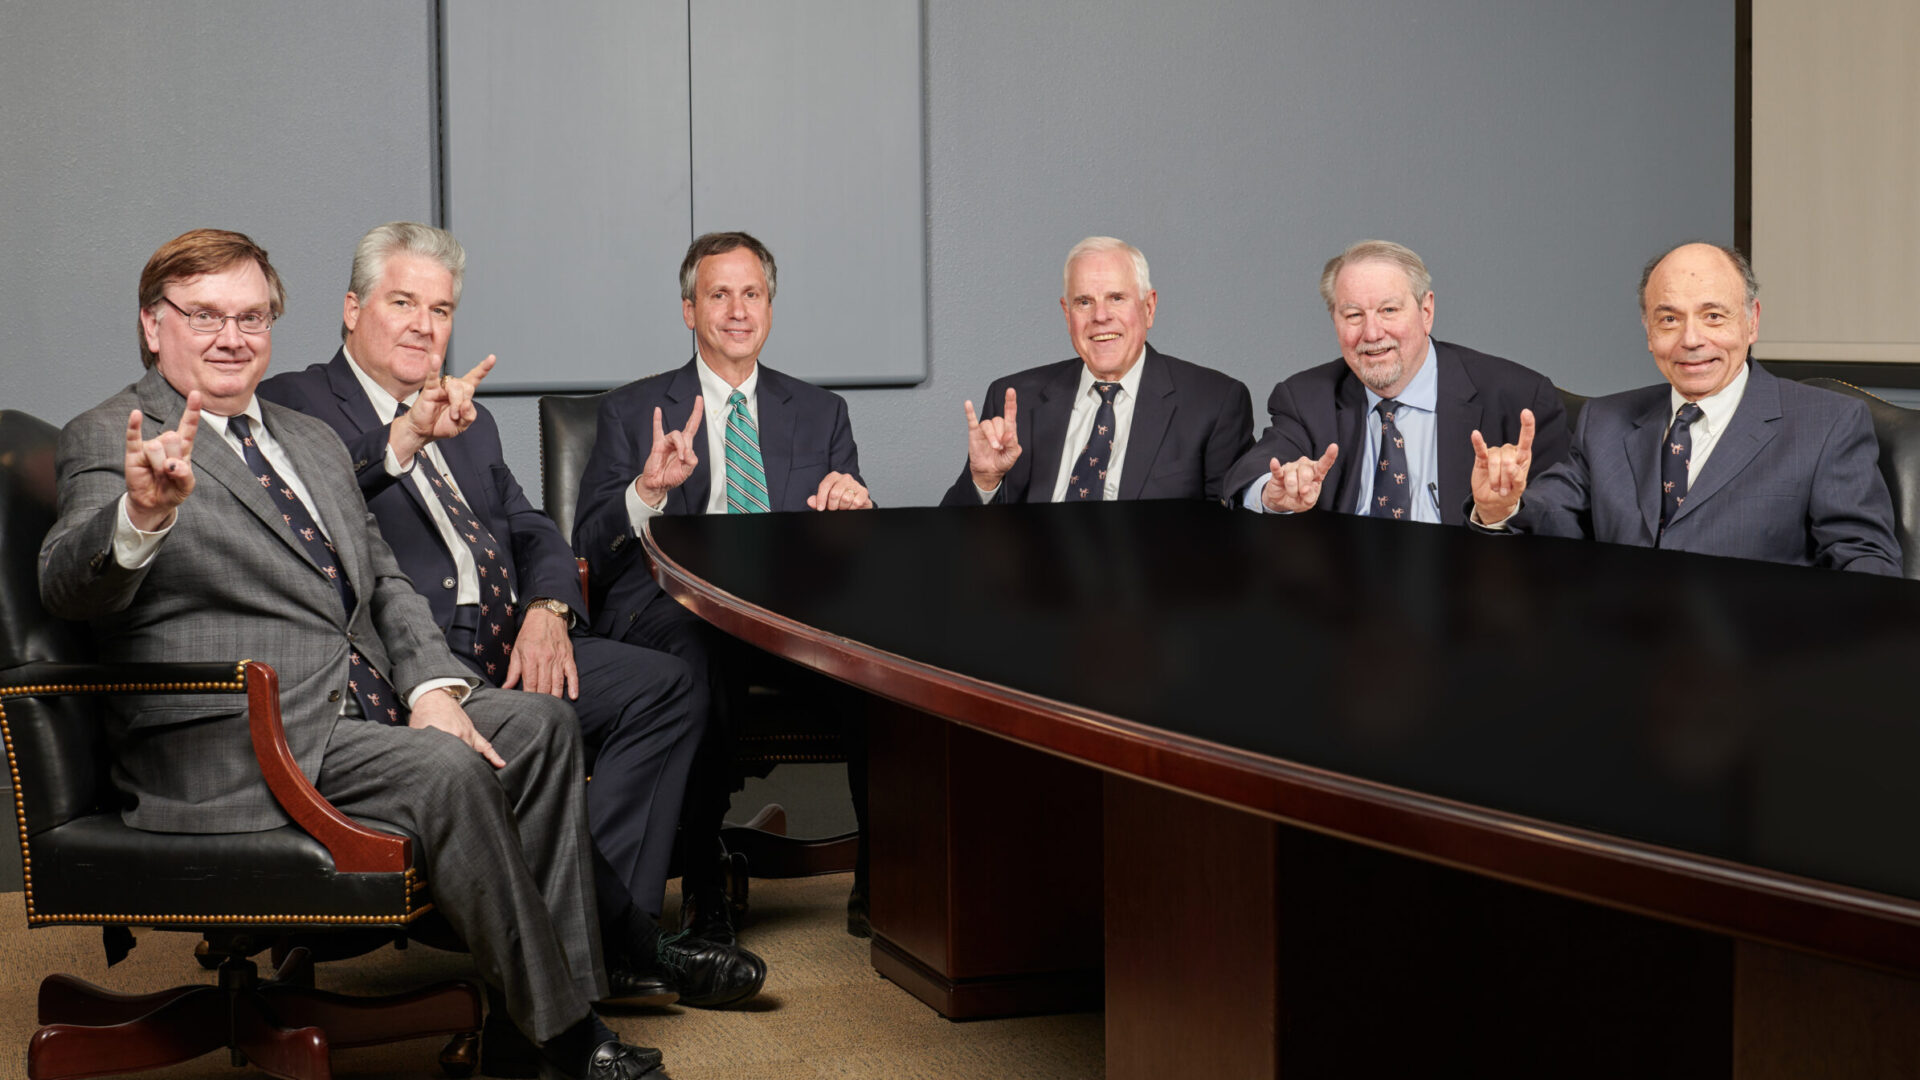 Six men in suits sitting at table